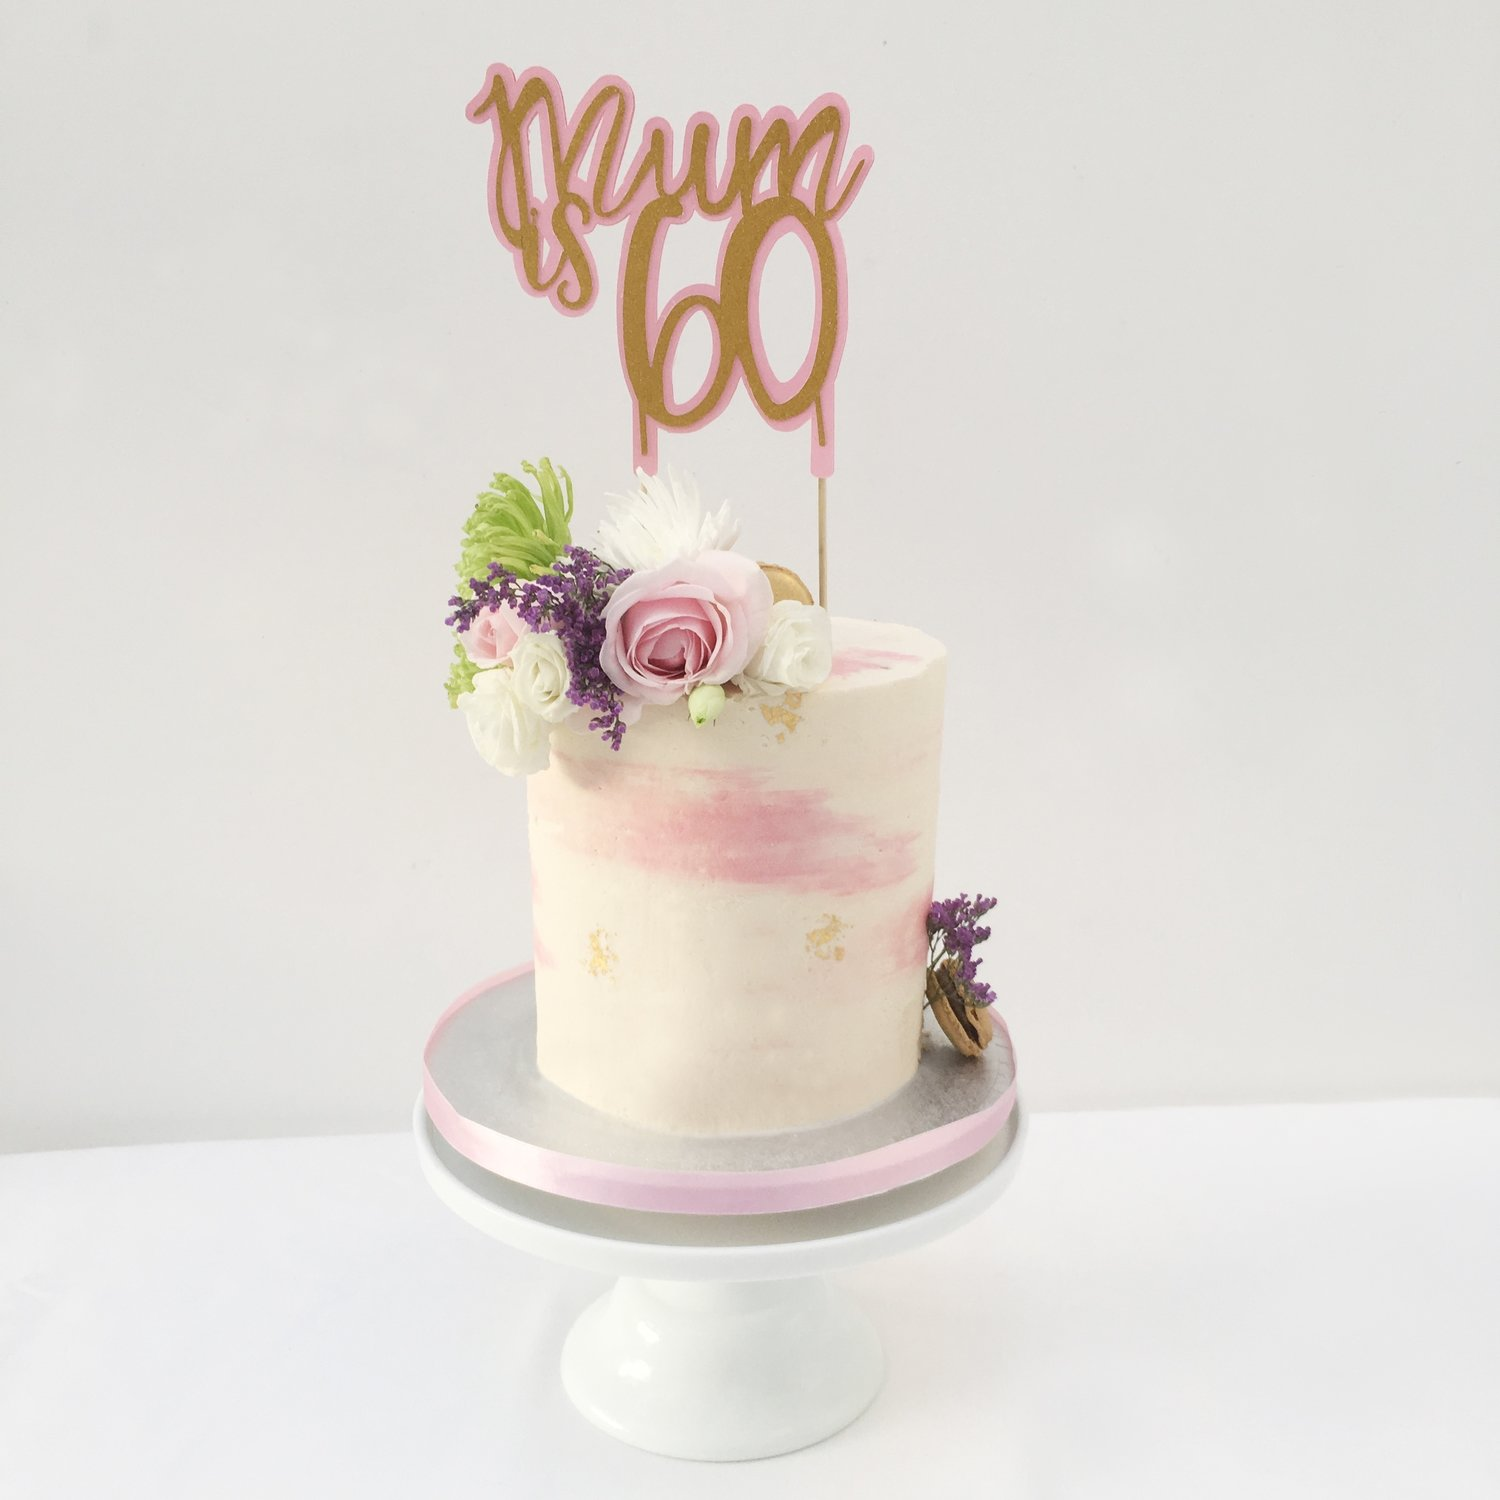 Ivory and Pink Butter-Cream with Edible Gold Leaf Cake